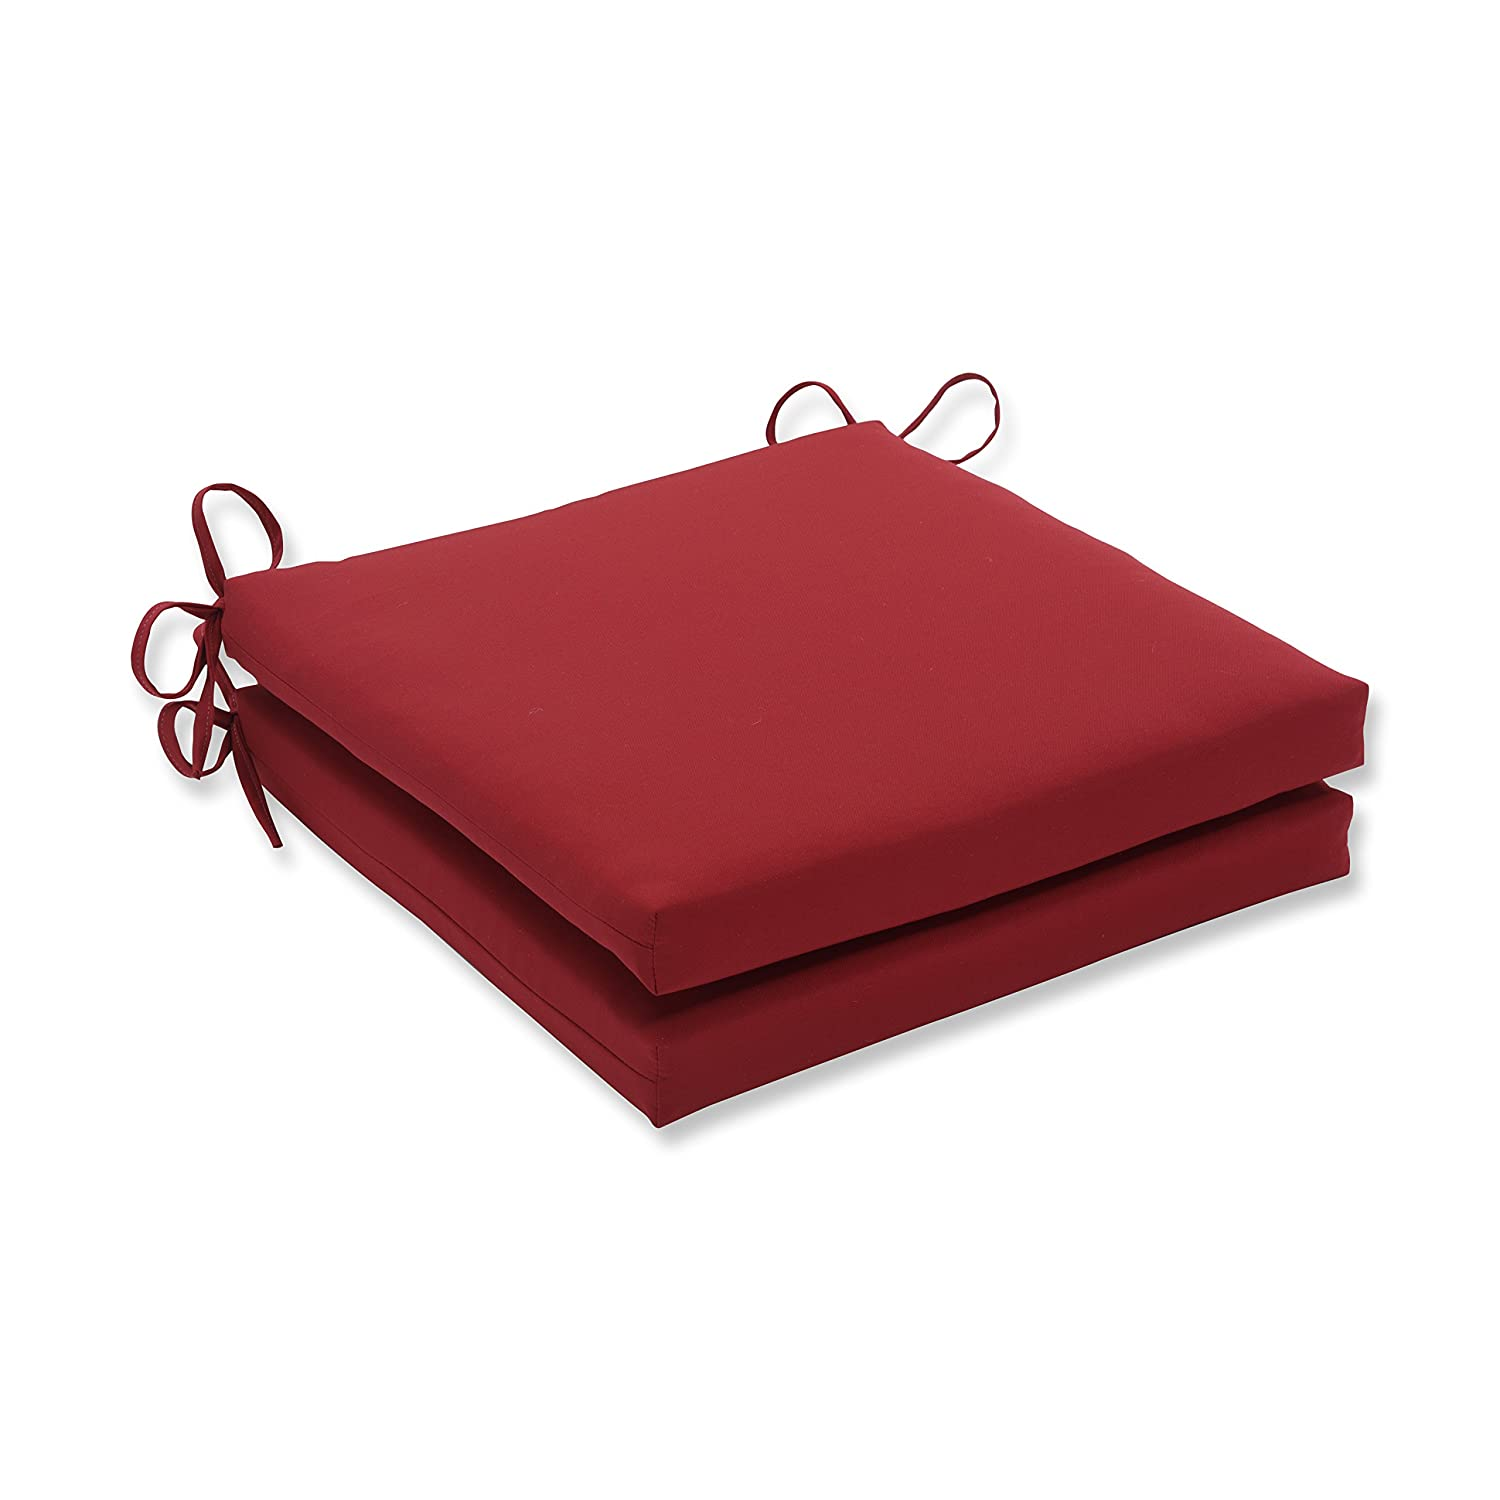 Pillow Perfect Outdoor Indoor Pompeii Red Squared Corners Seat Cushion 20x20x3 Set of 2